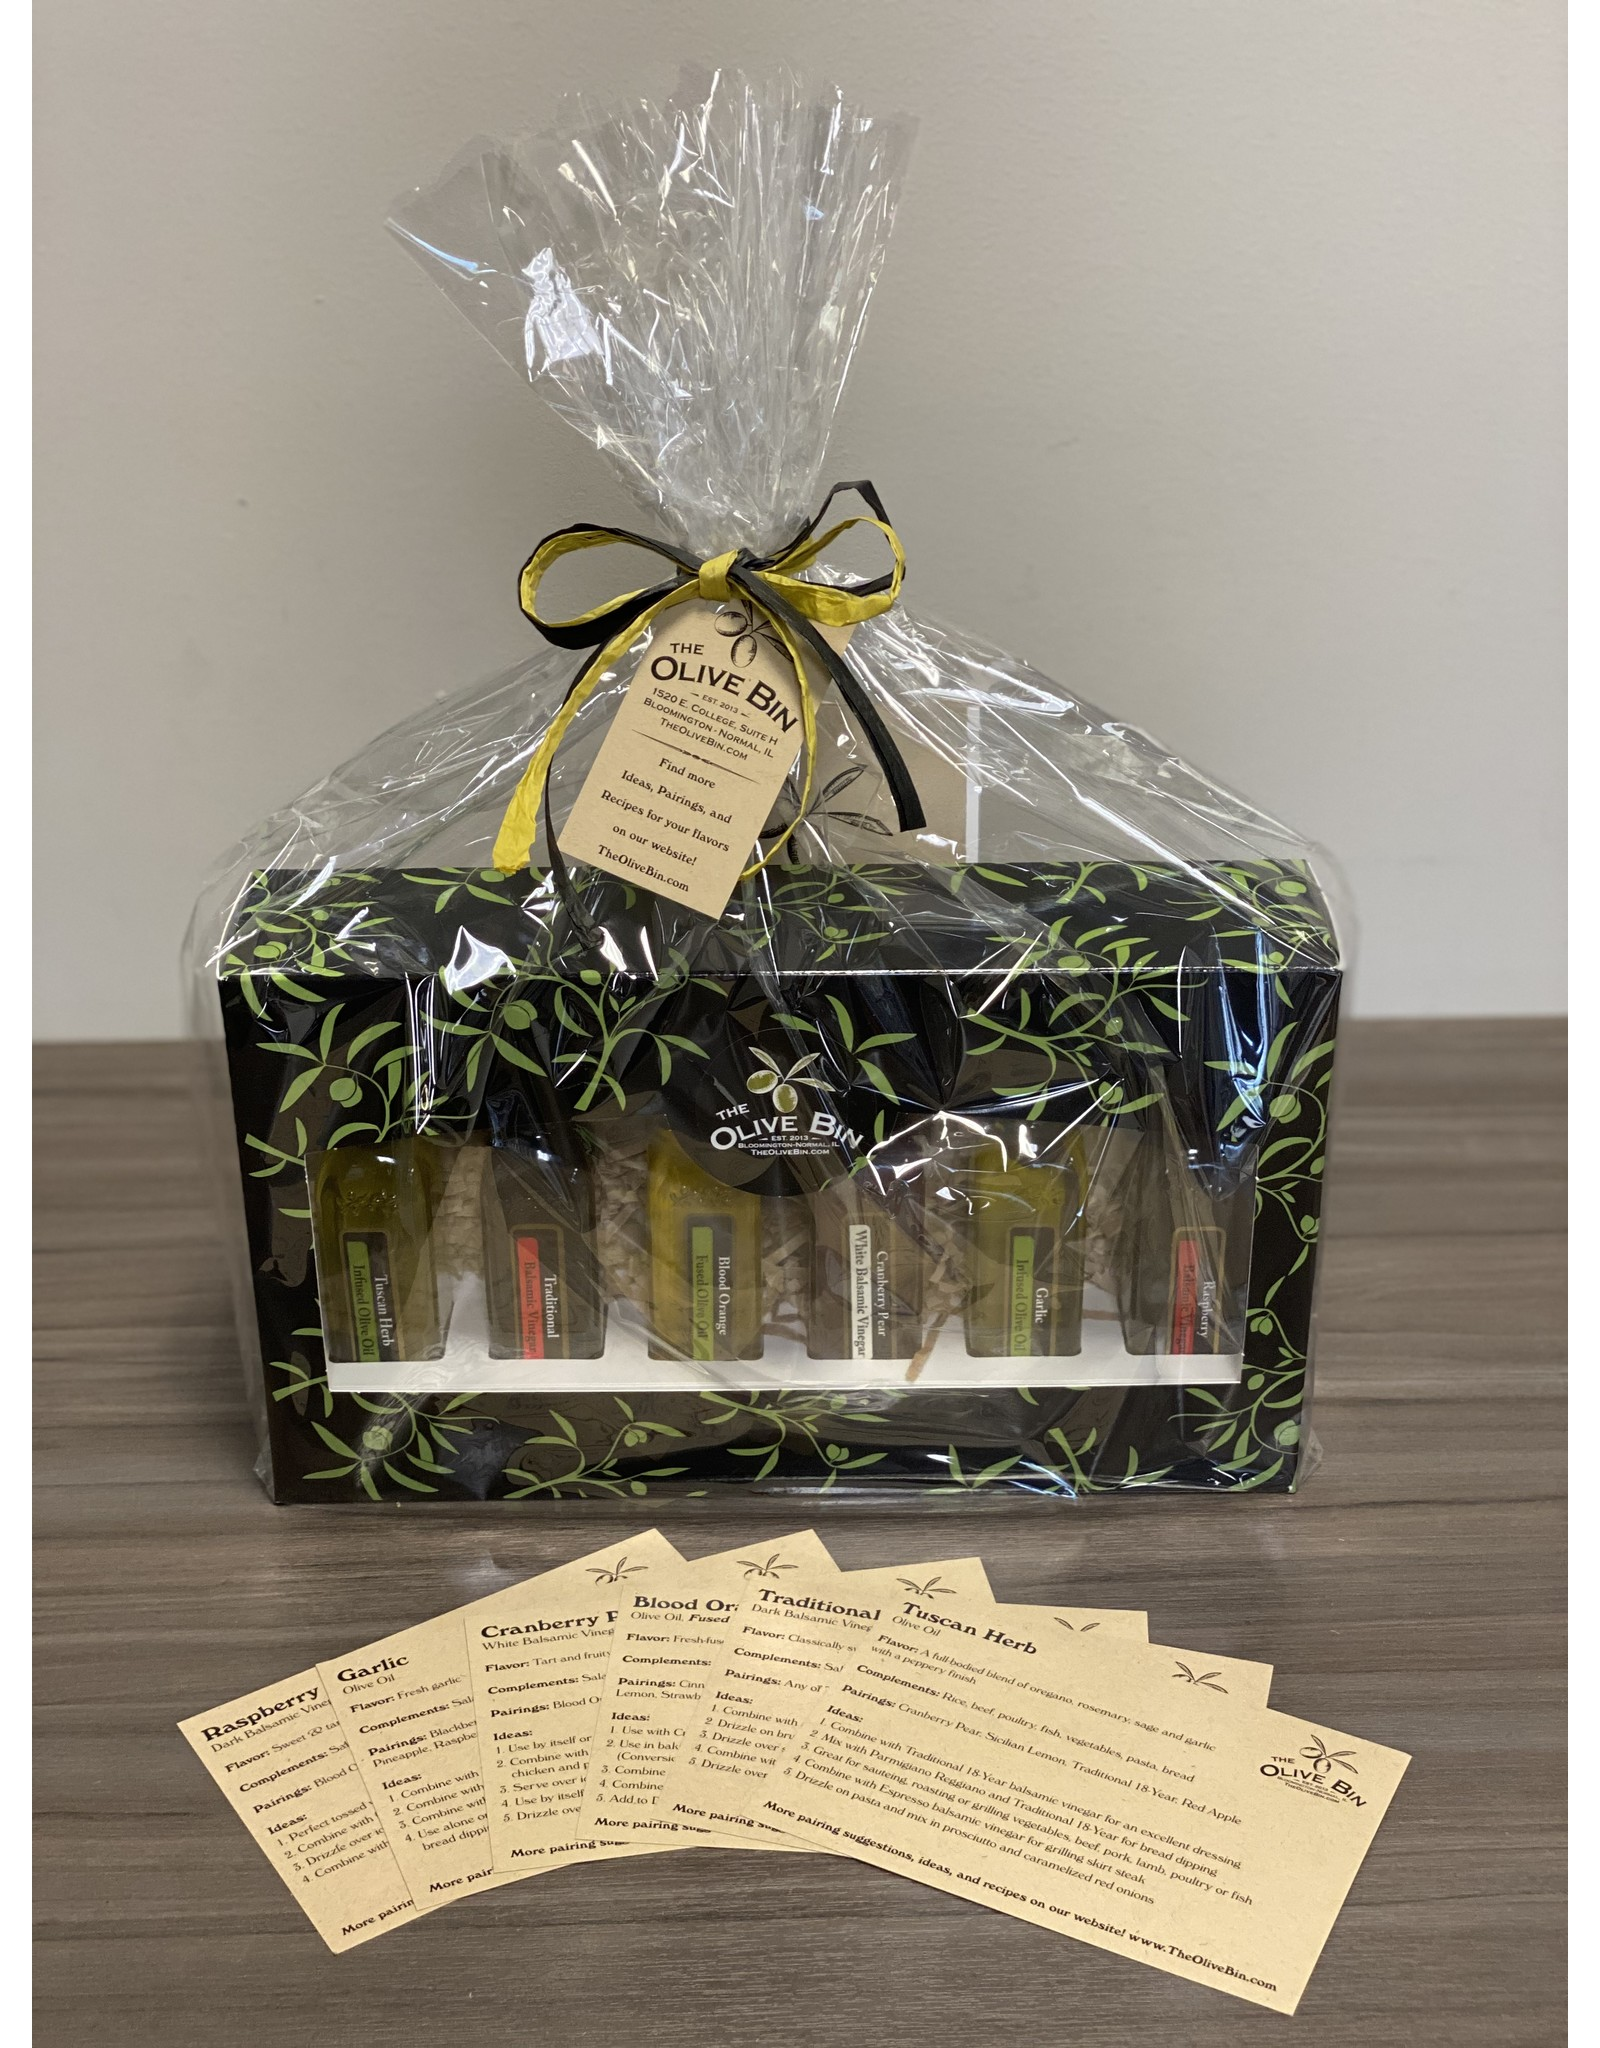 The Olive Bin's 6 Pack Sampler - WRAPPED